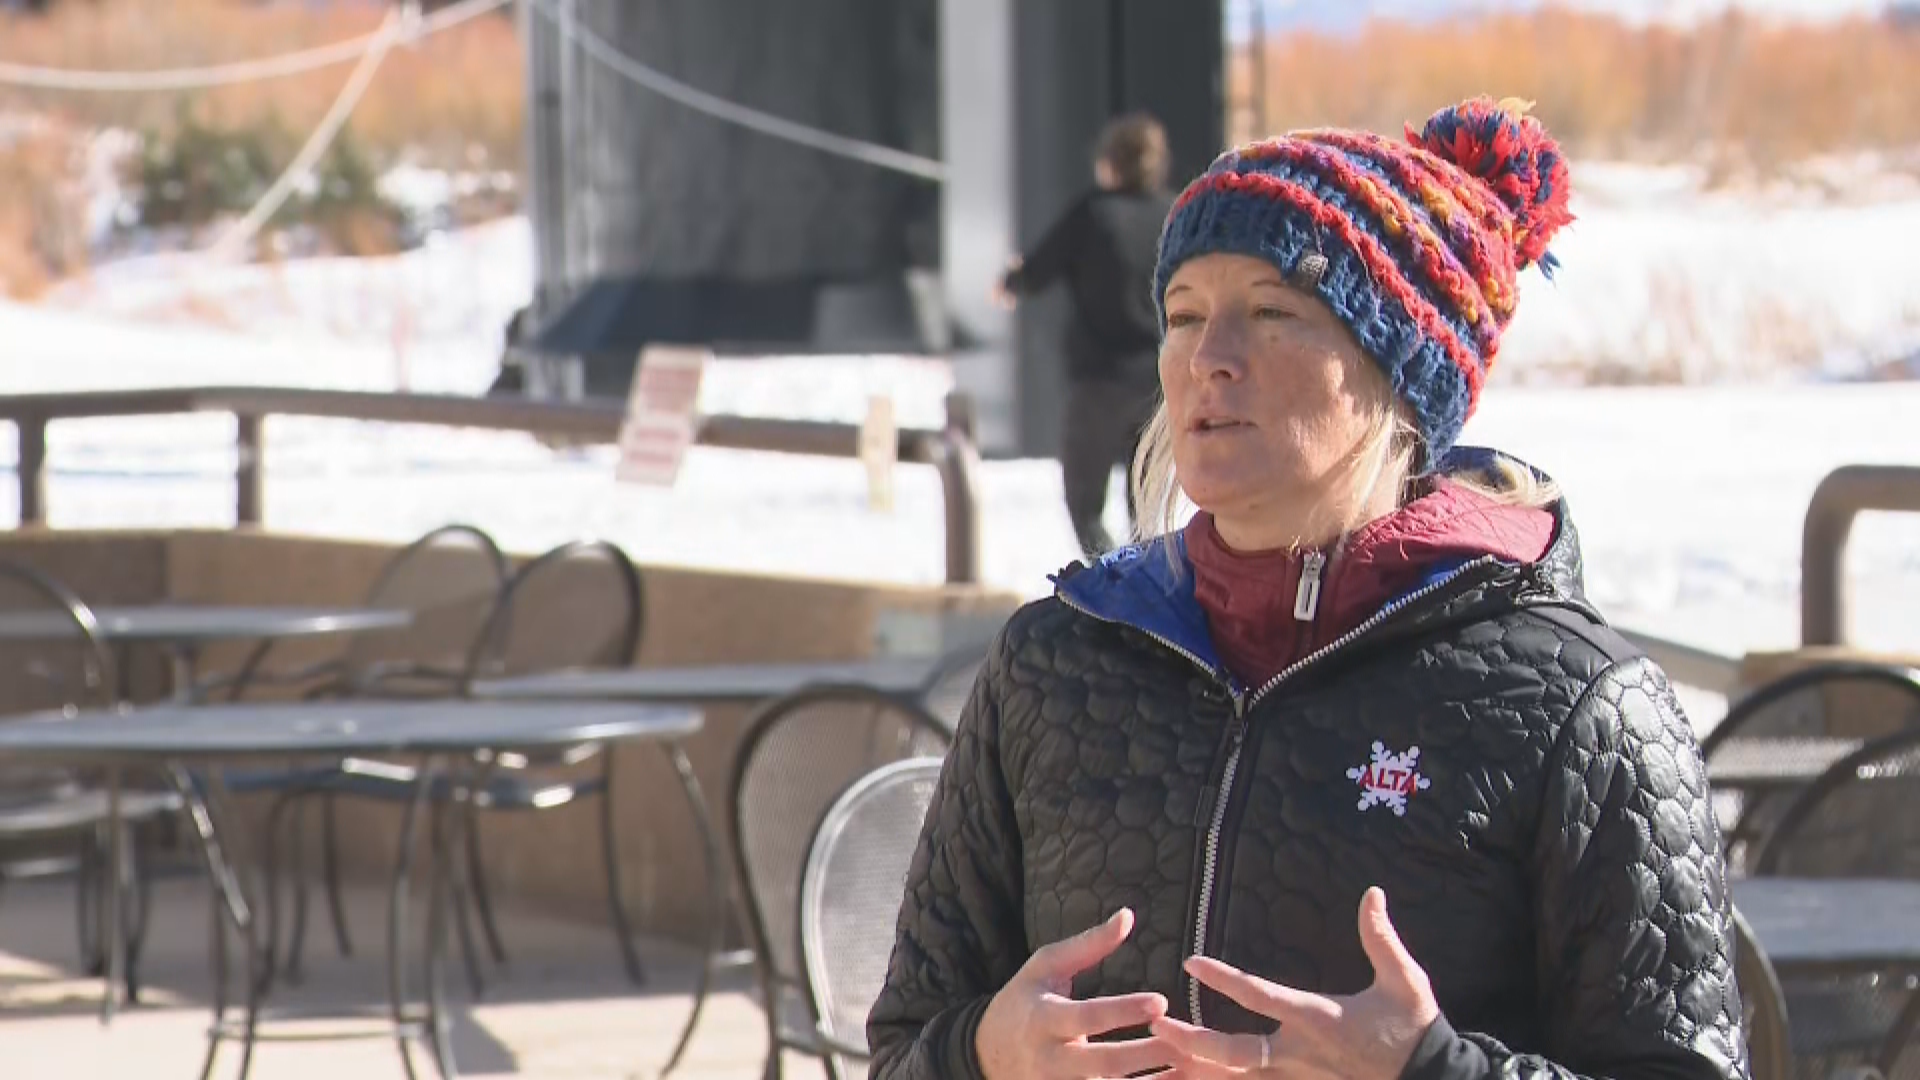 Andria Huskinson, communications manager for Alta Ski Area. (Photo: KUTV)